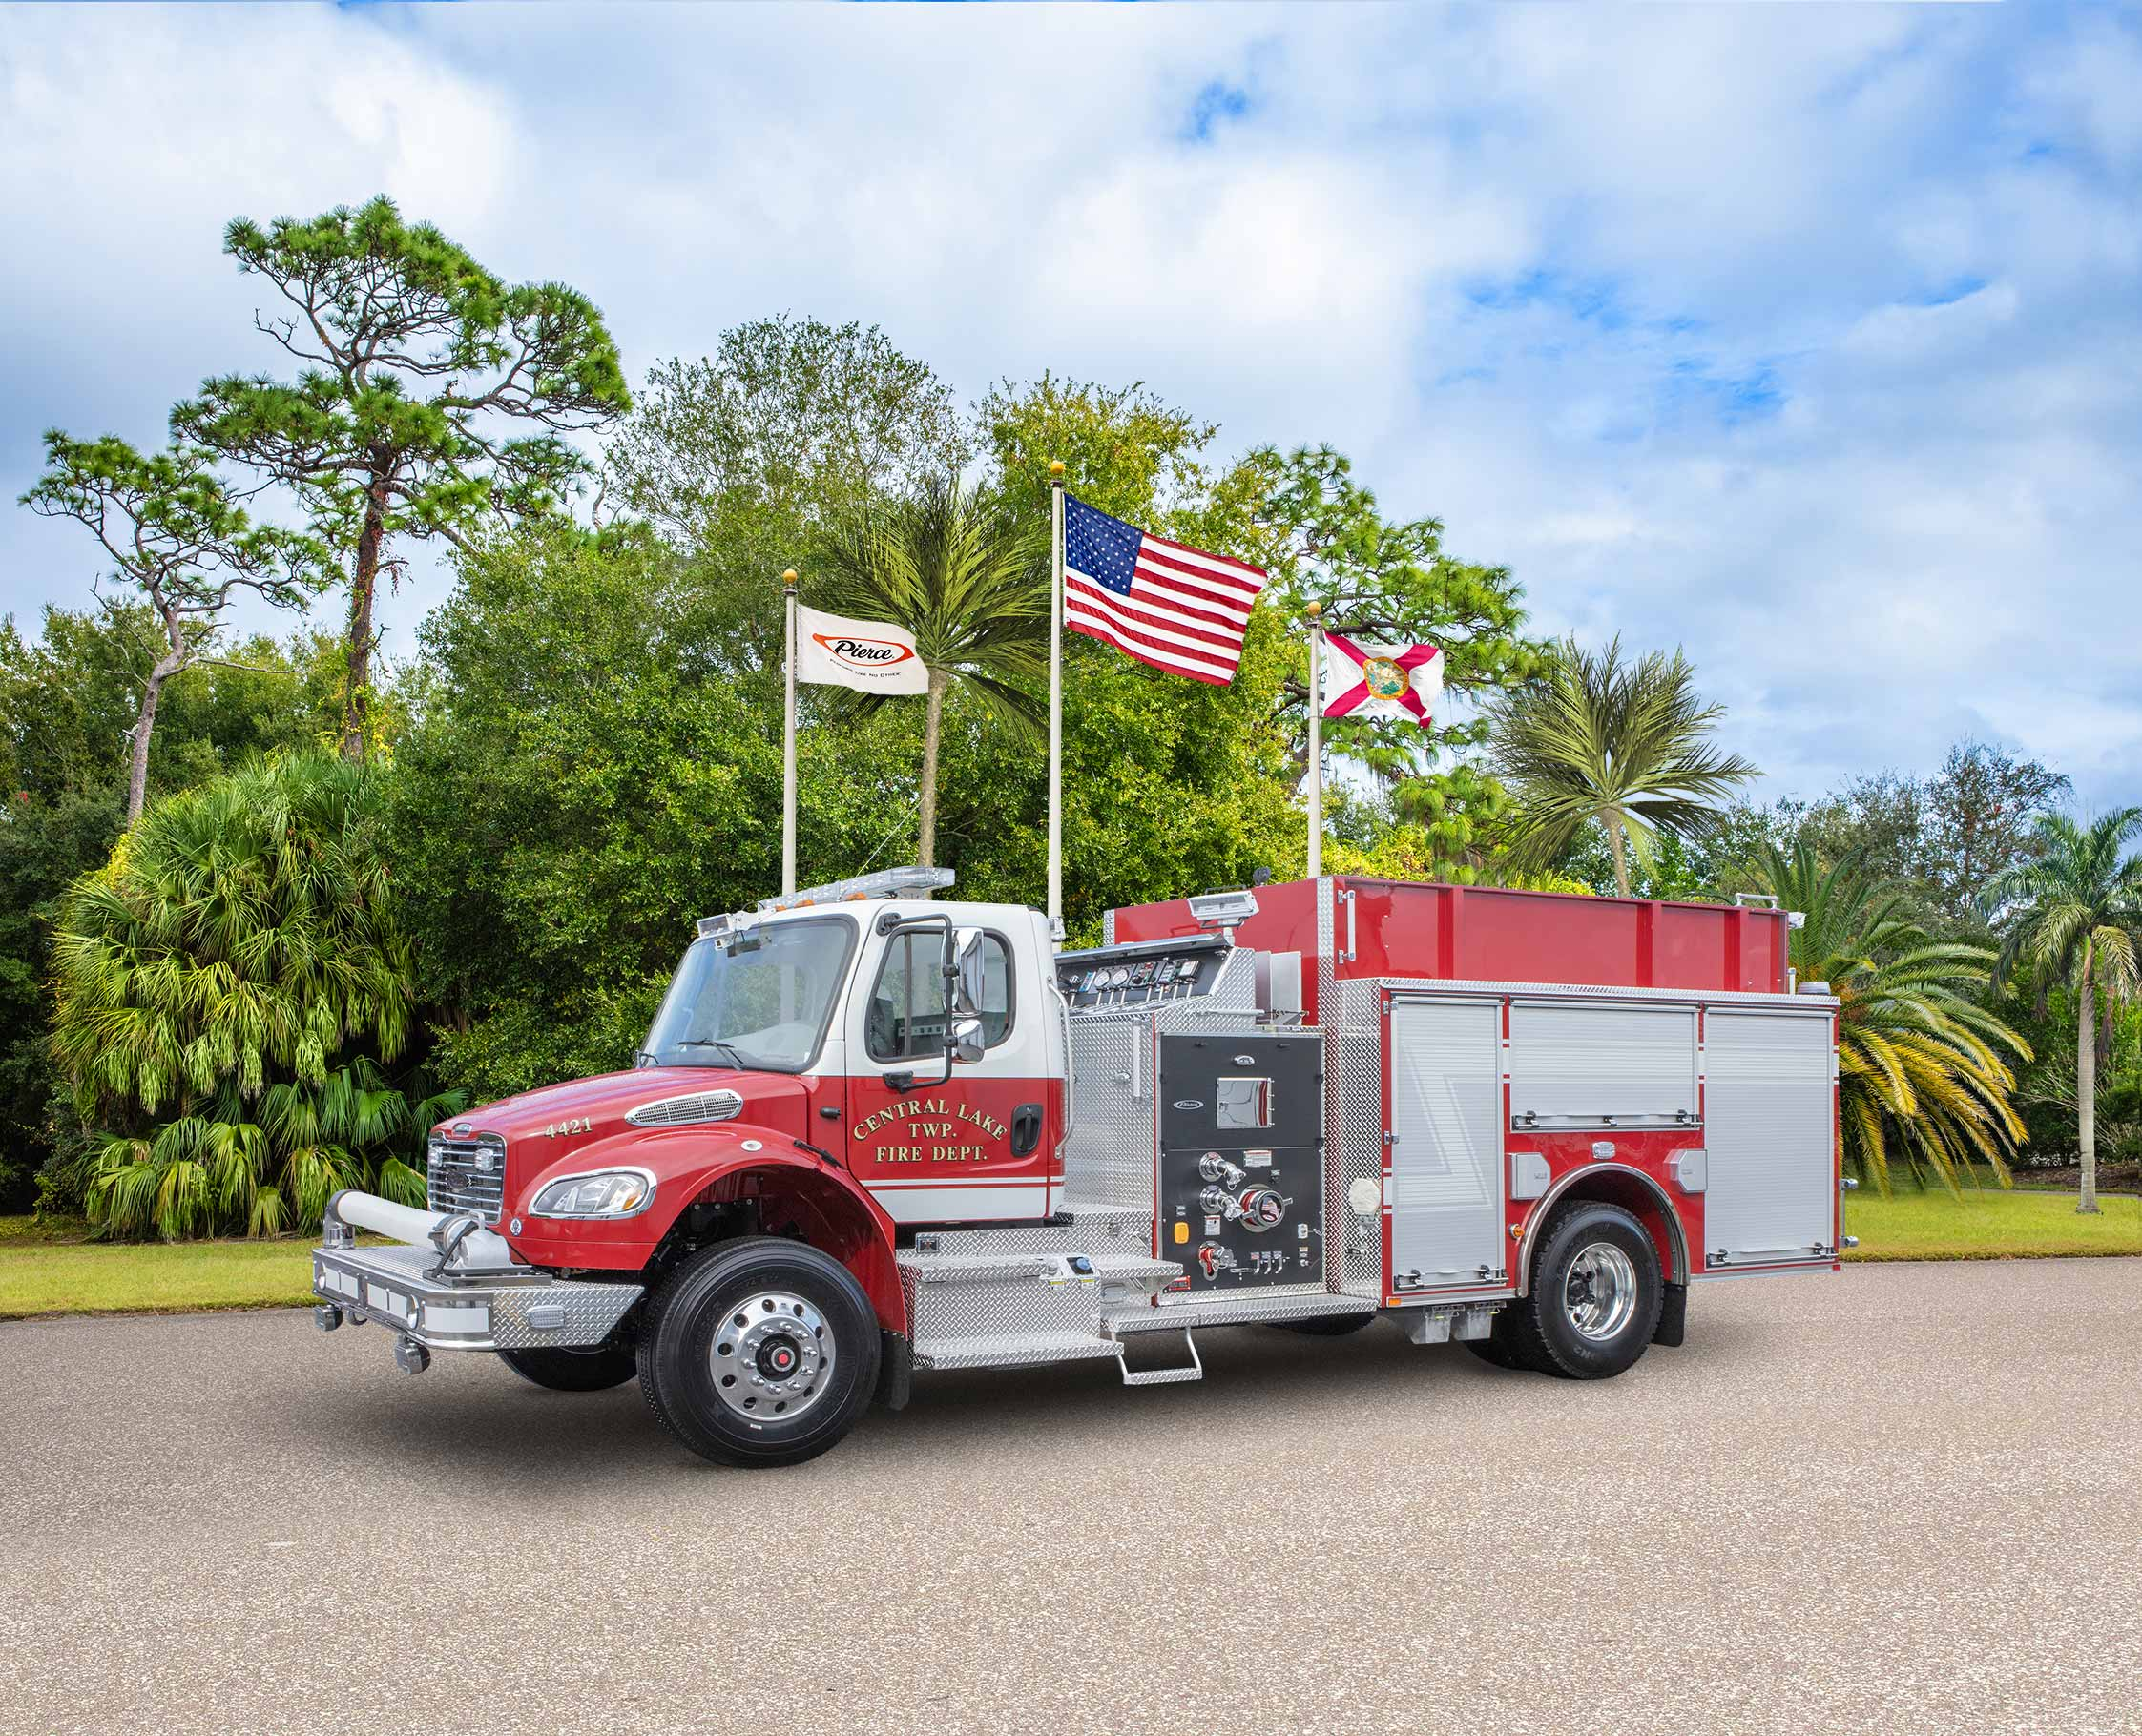 Central Lake Township Fire Department - Pumper